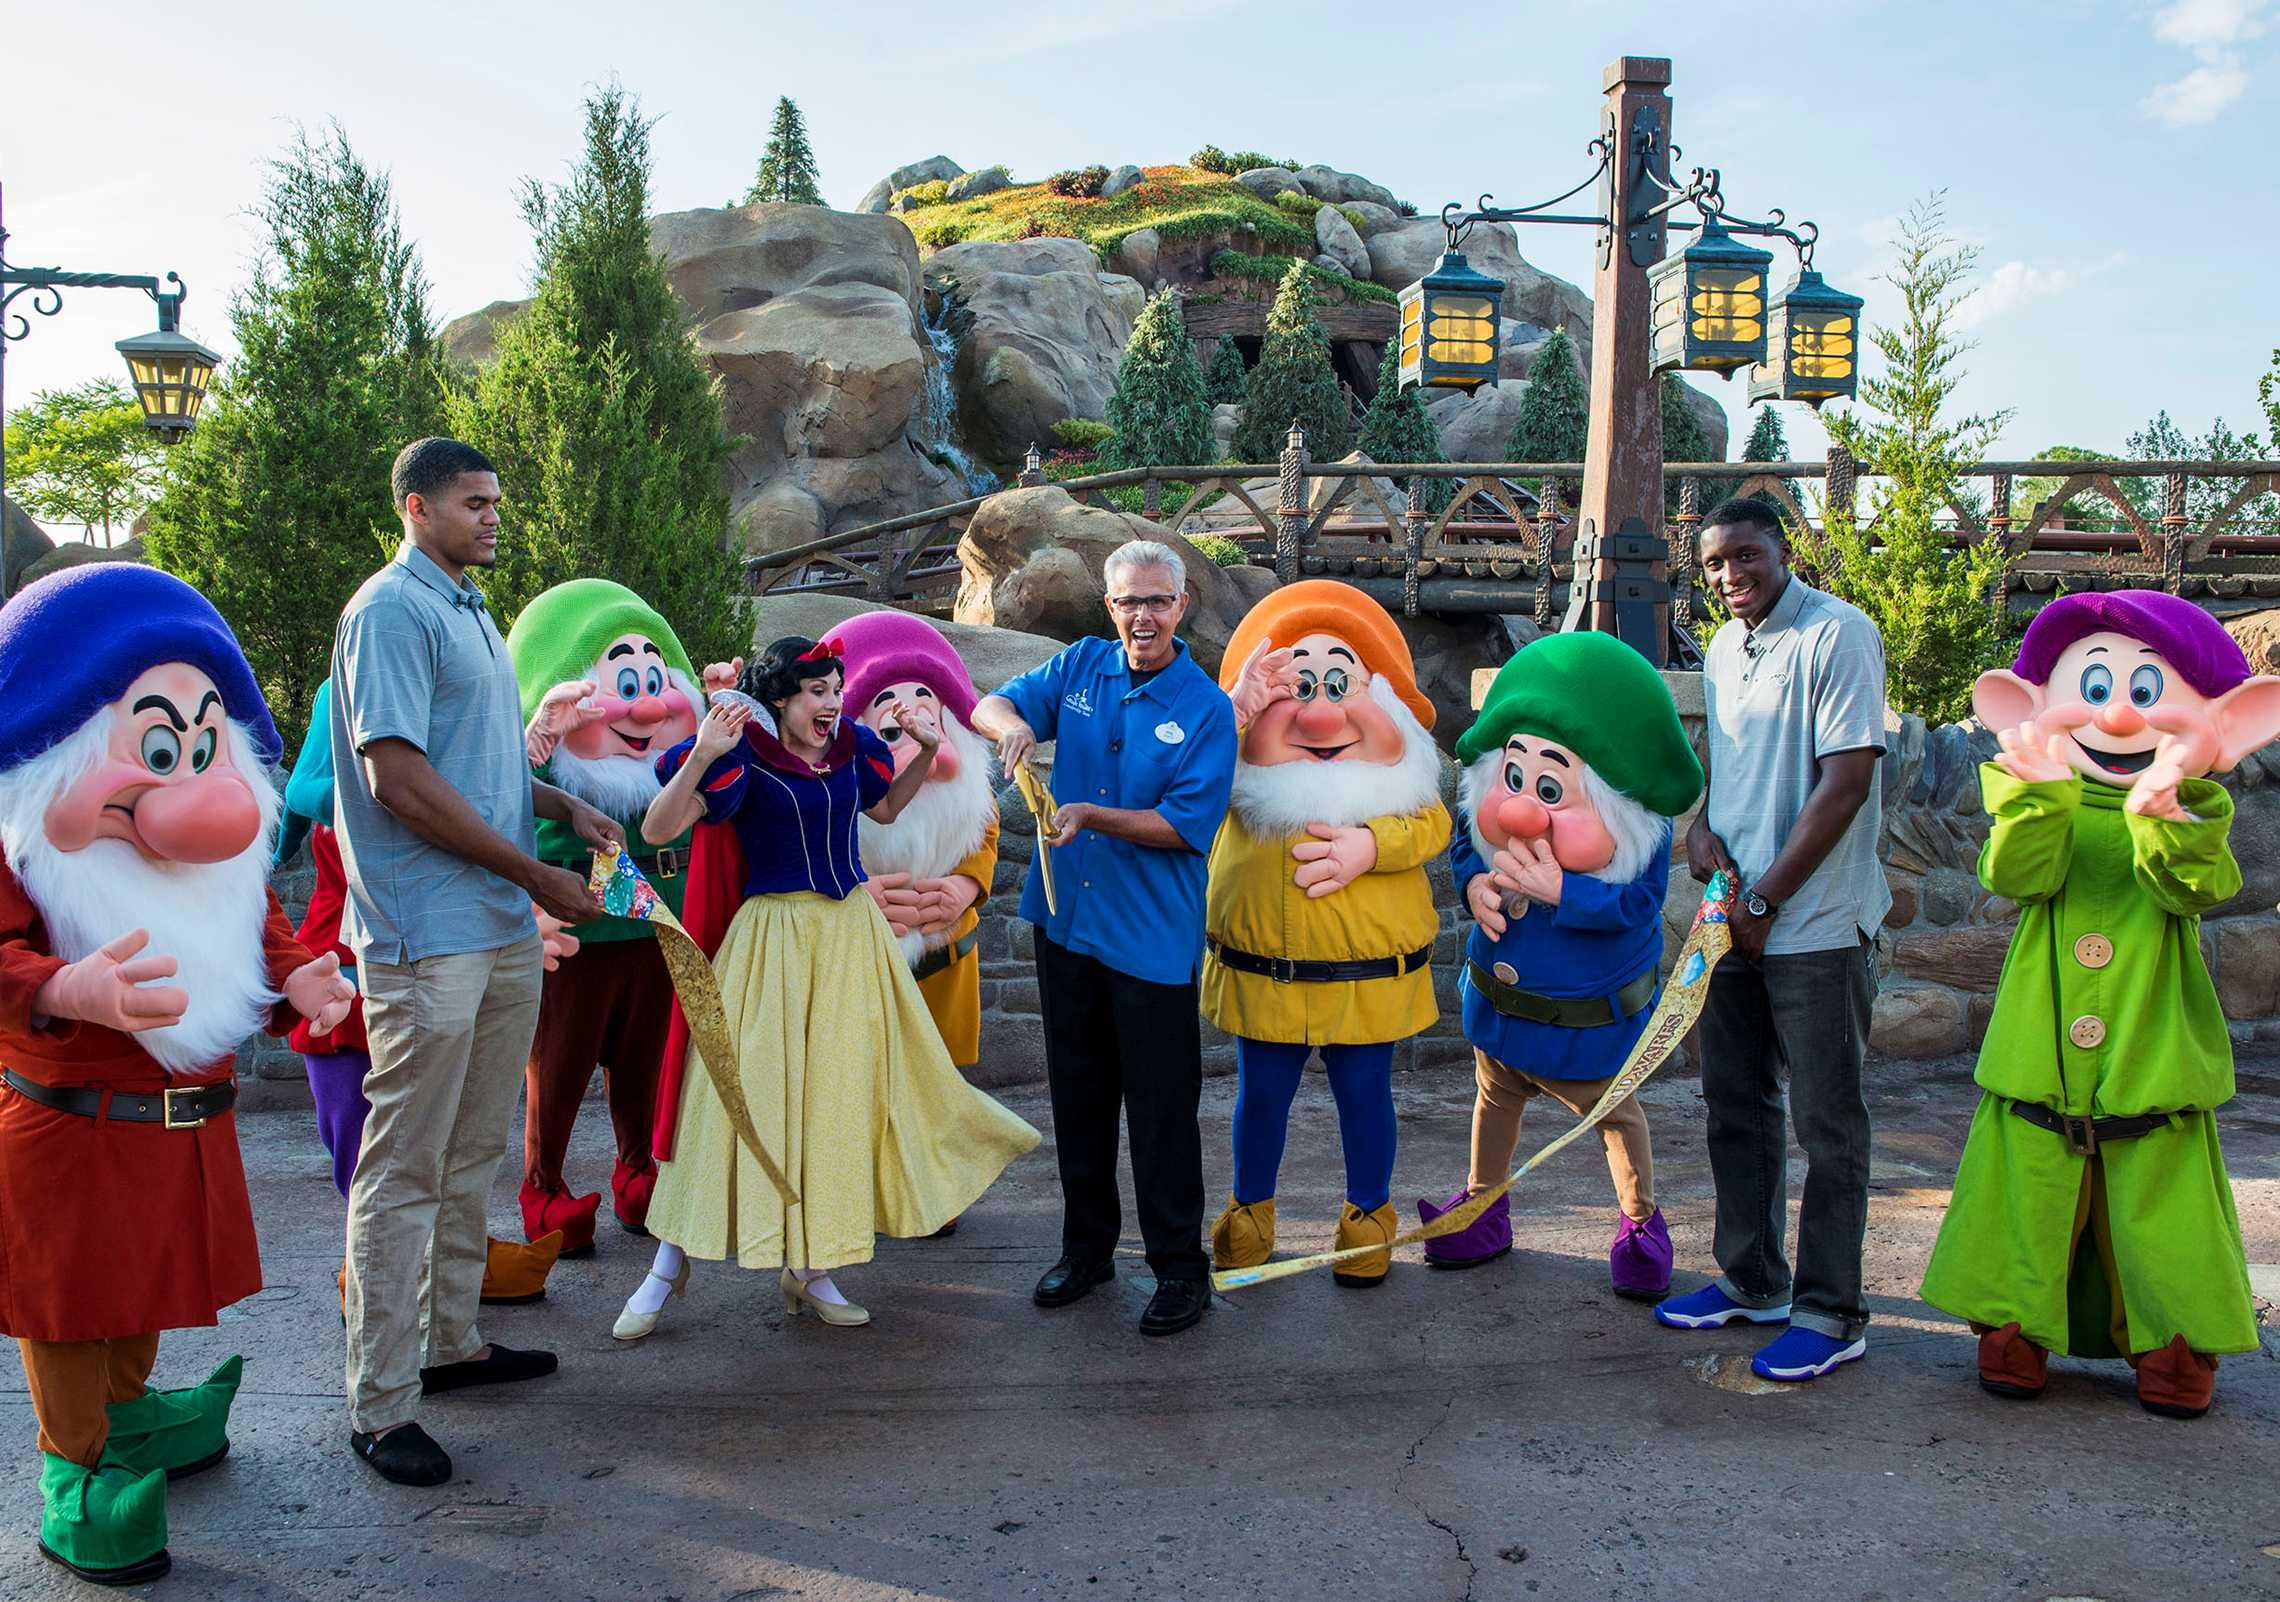 Snow White and the Seven Dwarfs join Phil Holmes (center), vice president of Magic Kingdom Park, and Orlando Magic players Tobias Harris (left) and Victor Oladipo (right)